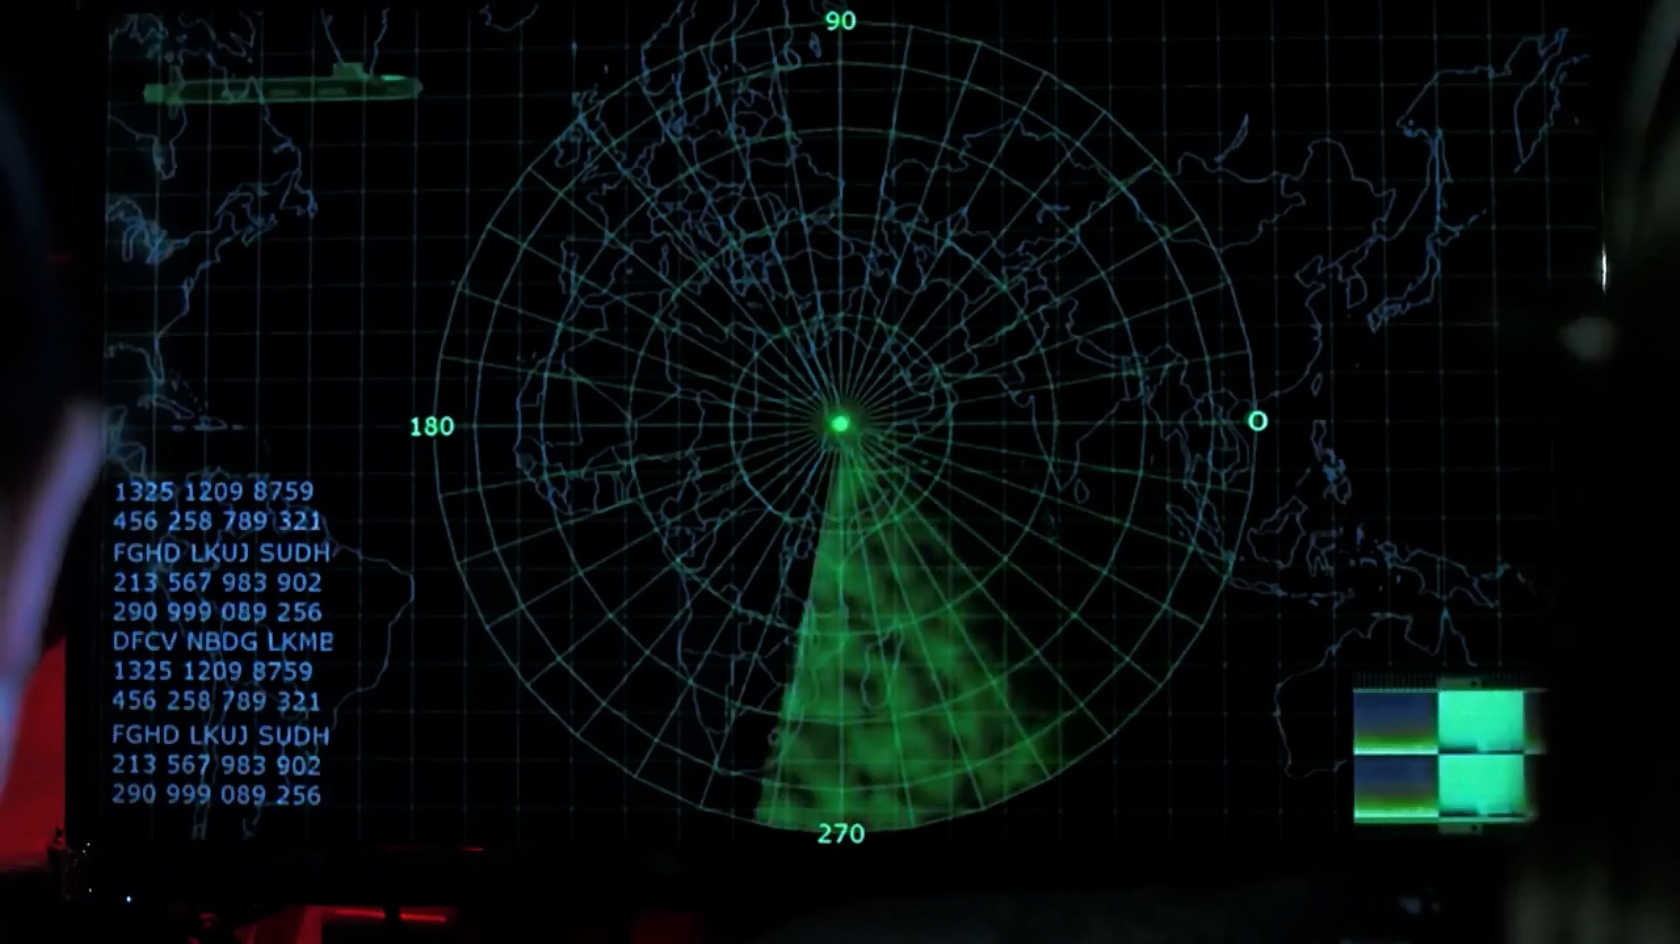 SONAR is detecting large landmasses, possibly Africa and Asia Minor.